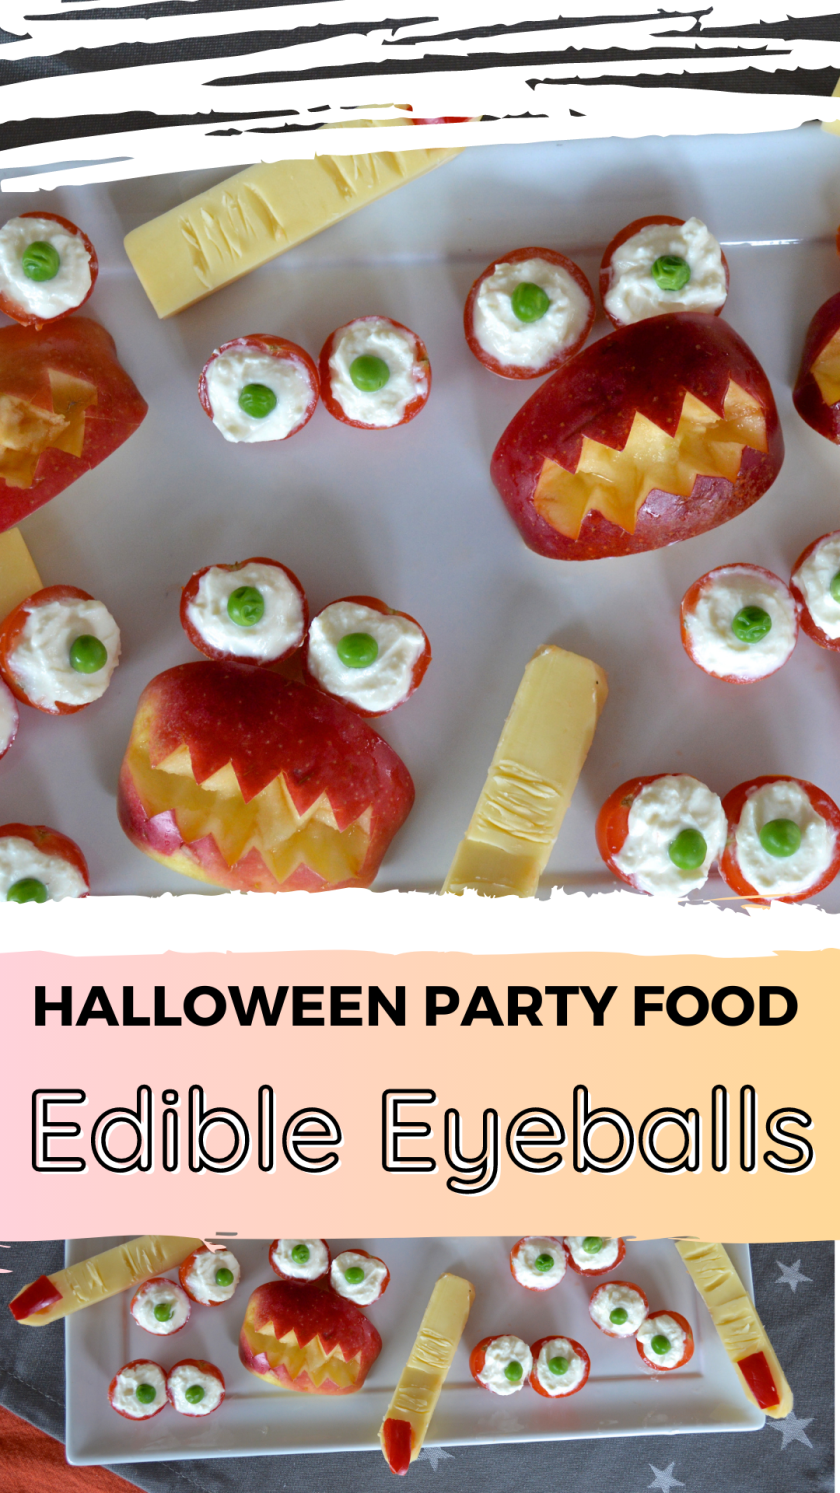 How to make edible eye balls for kids Halloween parties